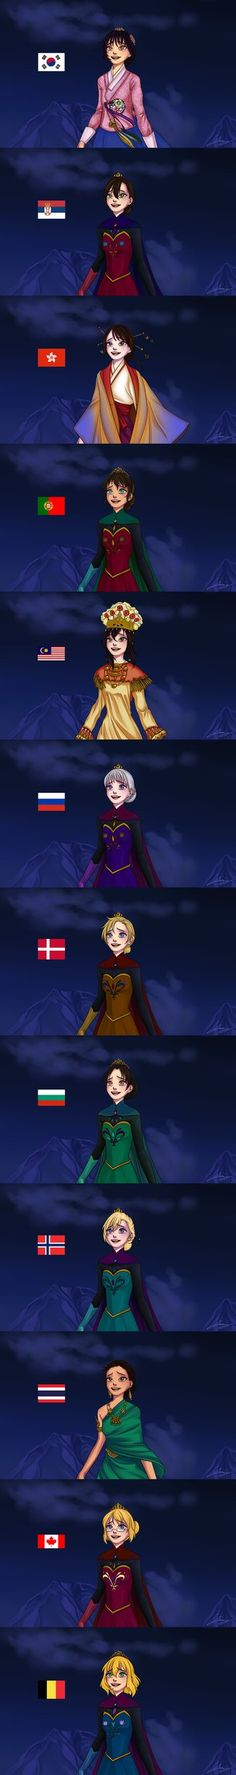 Frozen-Hetalia - Let it go - complete2 by x-Lilou-chan-x on DeviantArt